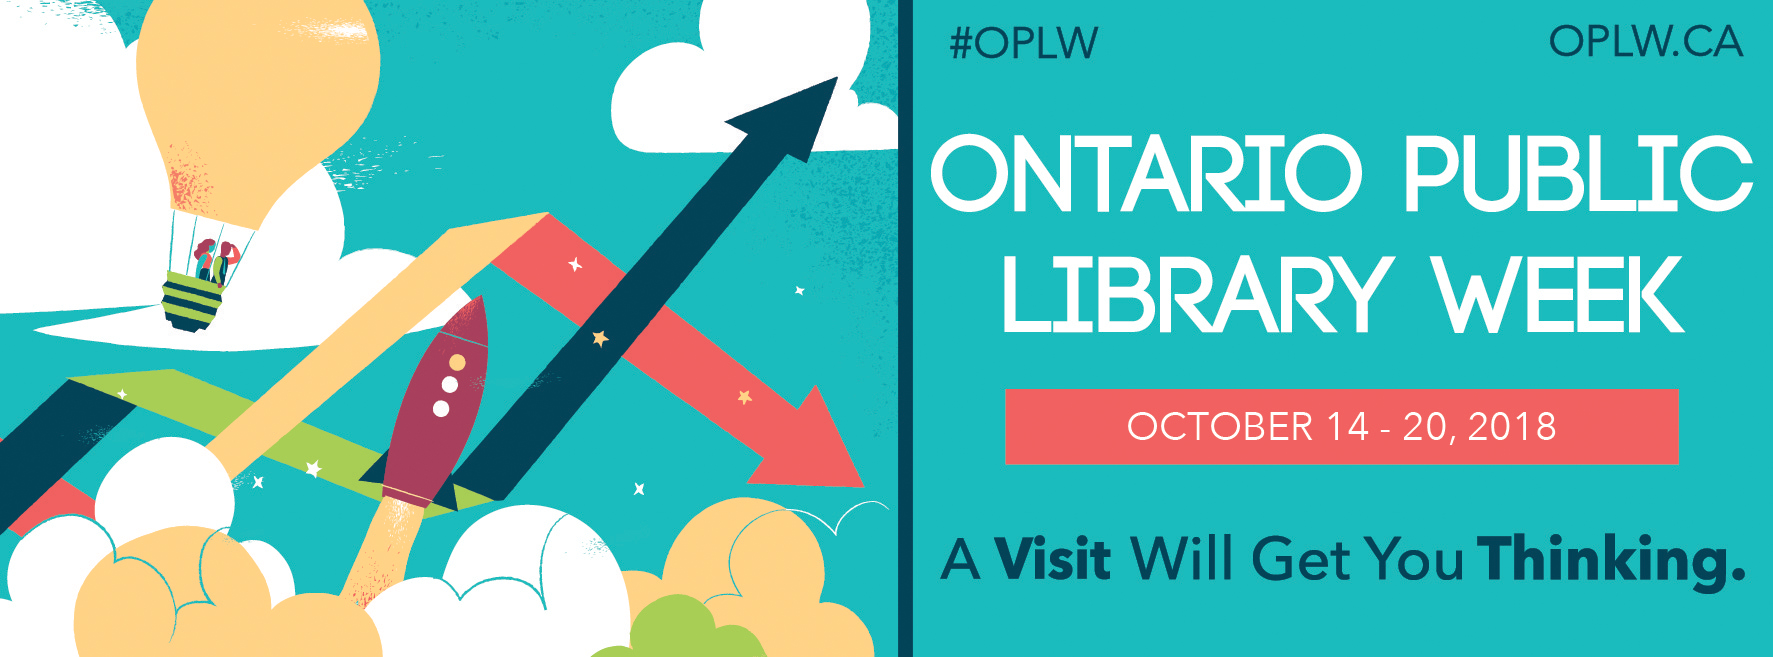 Illustration of blue sky and hot air balloon. Text: Ontario Public Library Week October 14-20 2018. A visit will get you thinking.